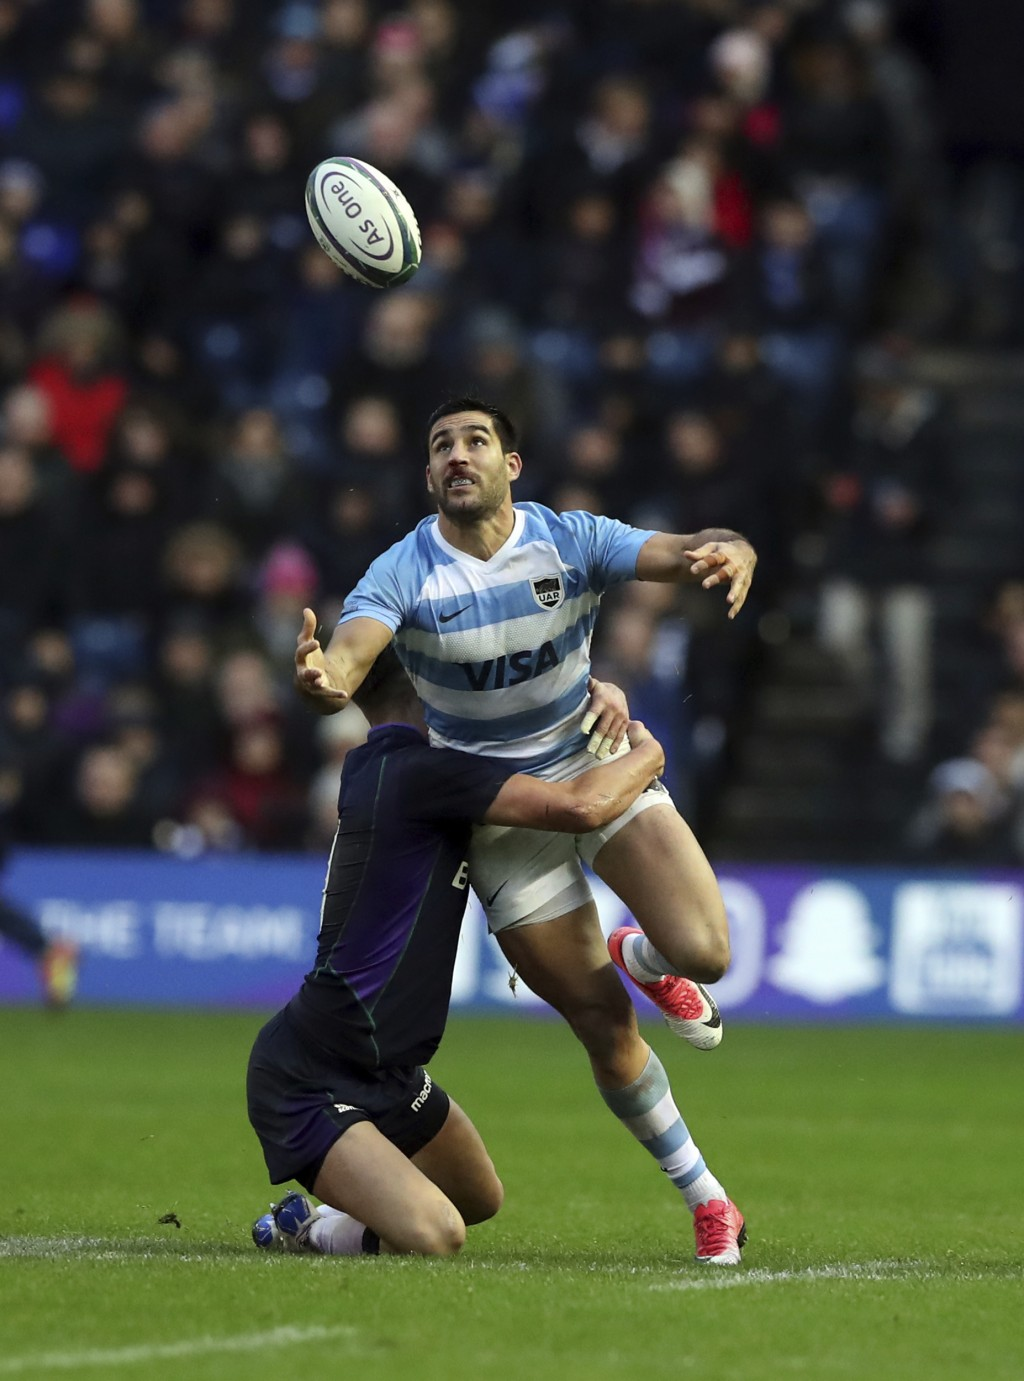 Argentina's Bautista Ezcurra, right, is tackled by Scotland's Adam Hastings during the rugby union international match between Scotland and Argentina ...